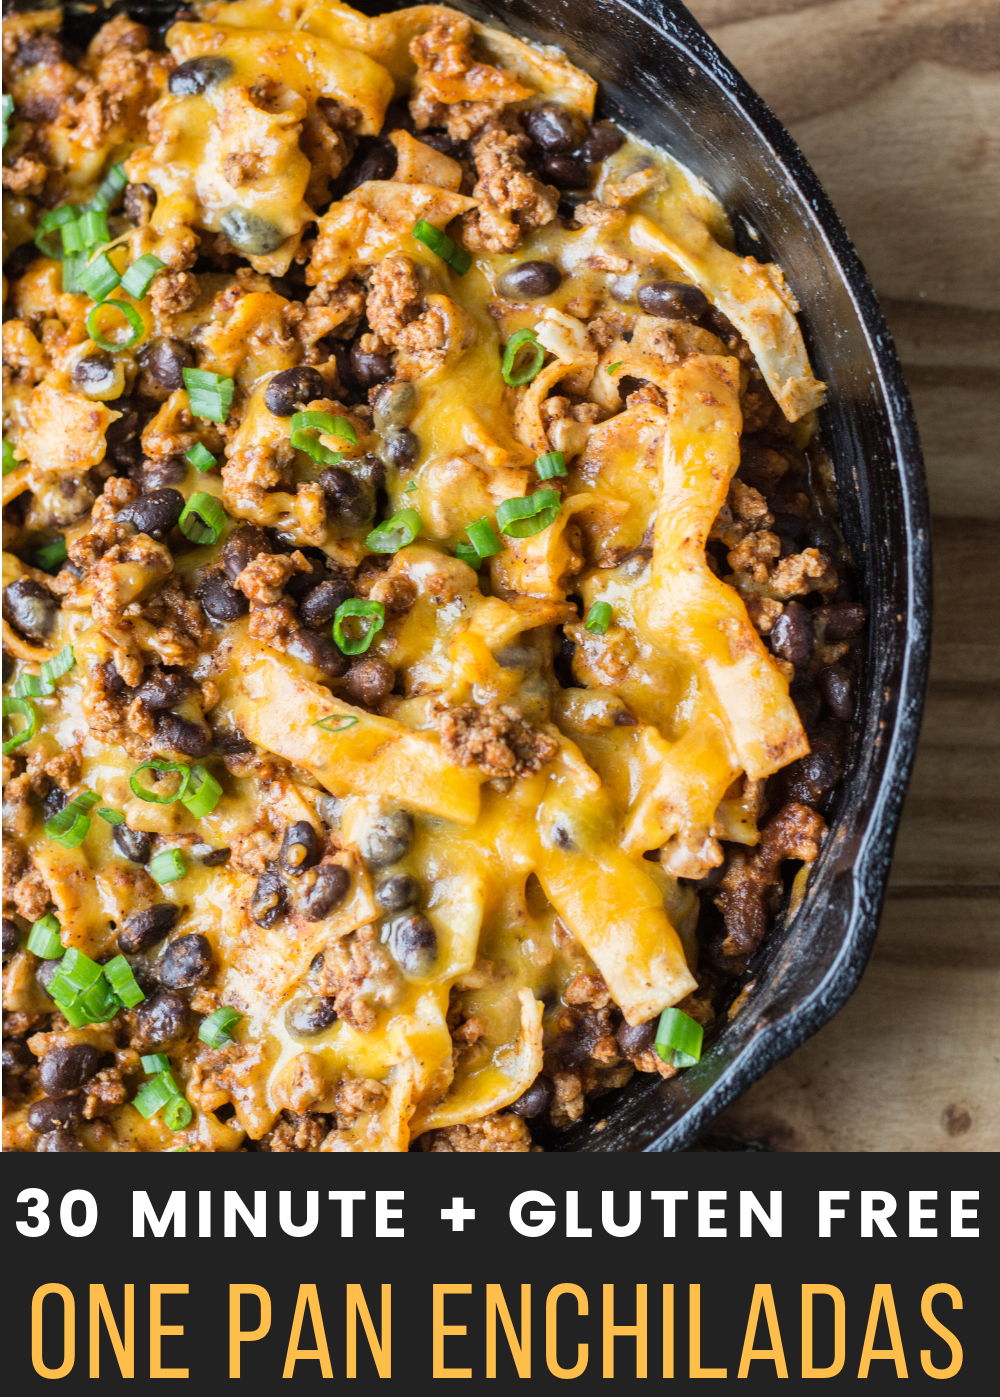 This Super Easy One Pan Enchilada Dish Will Become A Family Favorite Ground Beef Black Beans A F Ground Beef Recipes Healthy Beef Recipes For Dinner Recipes